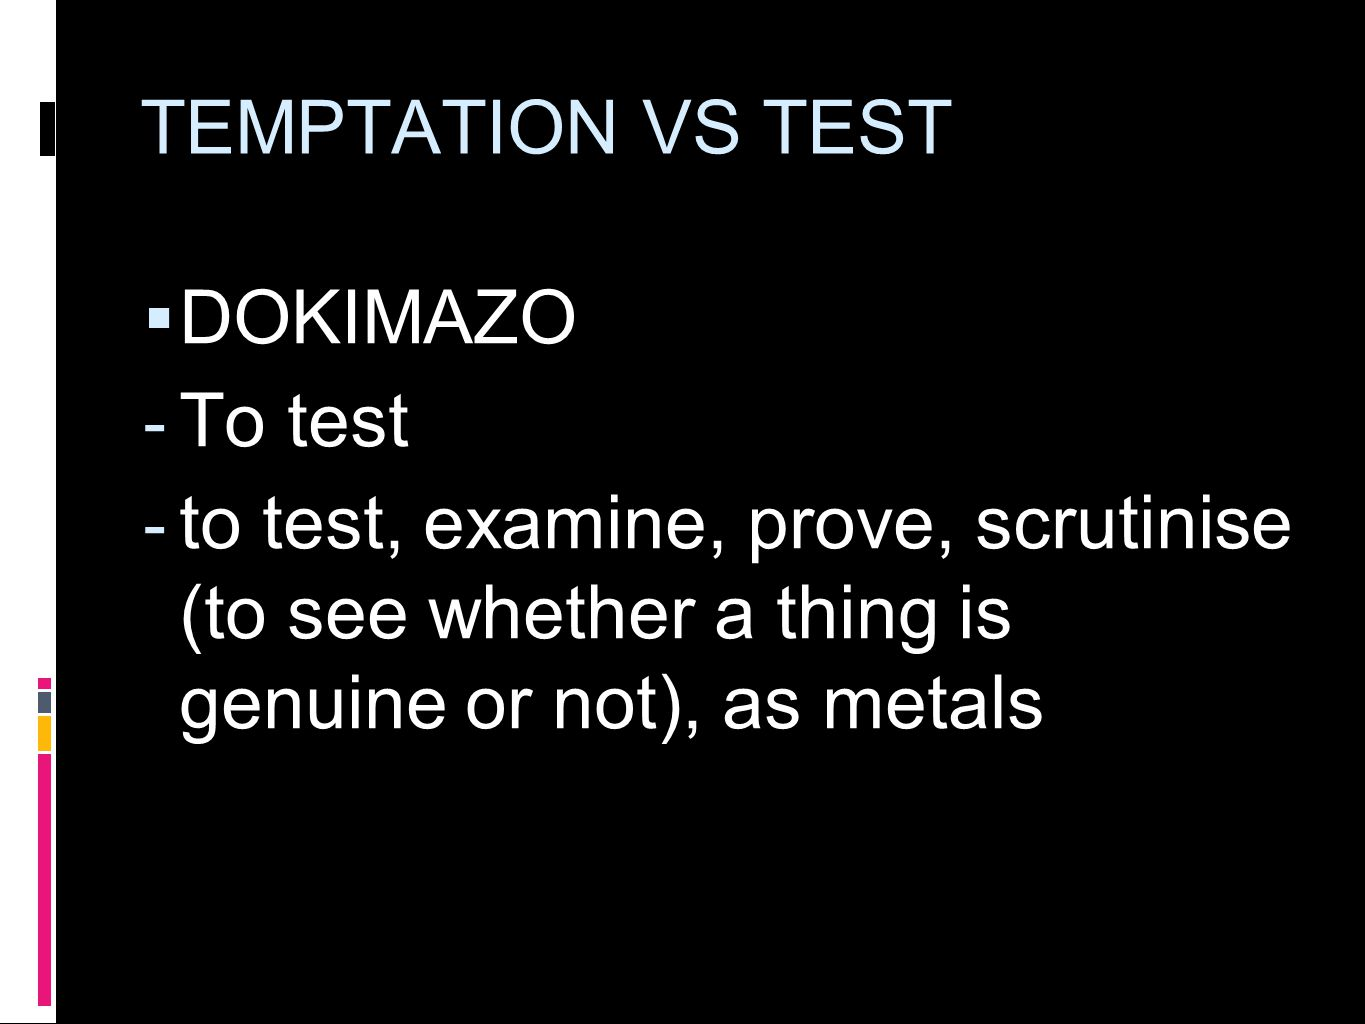 TEMPTATION VS TEST  DOKIMAZO  To test  to test, examine, prove, scrutinise (to see whether a thing is genuine or not), as metals